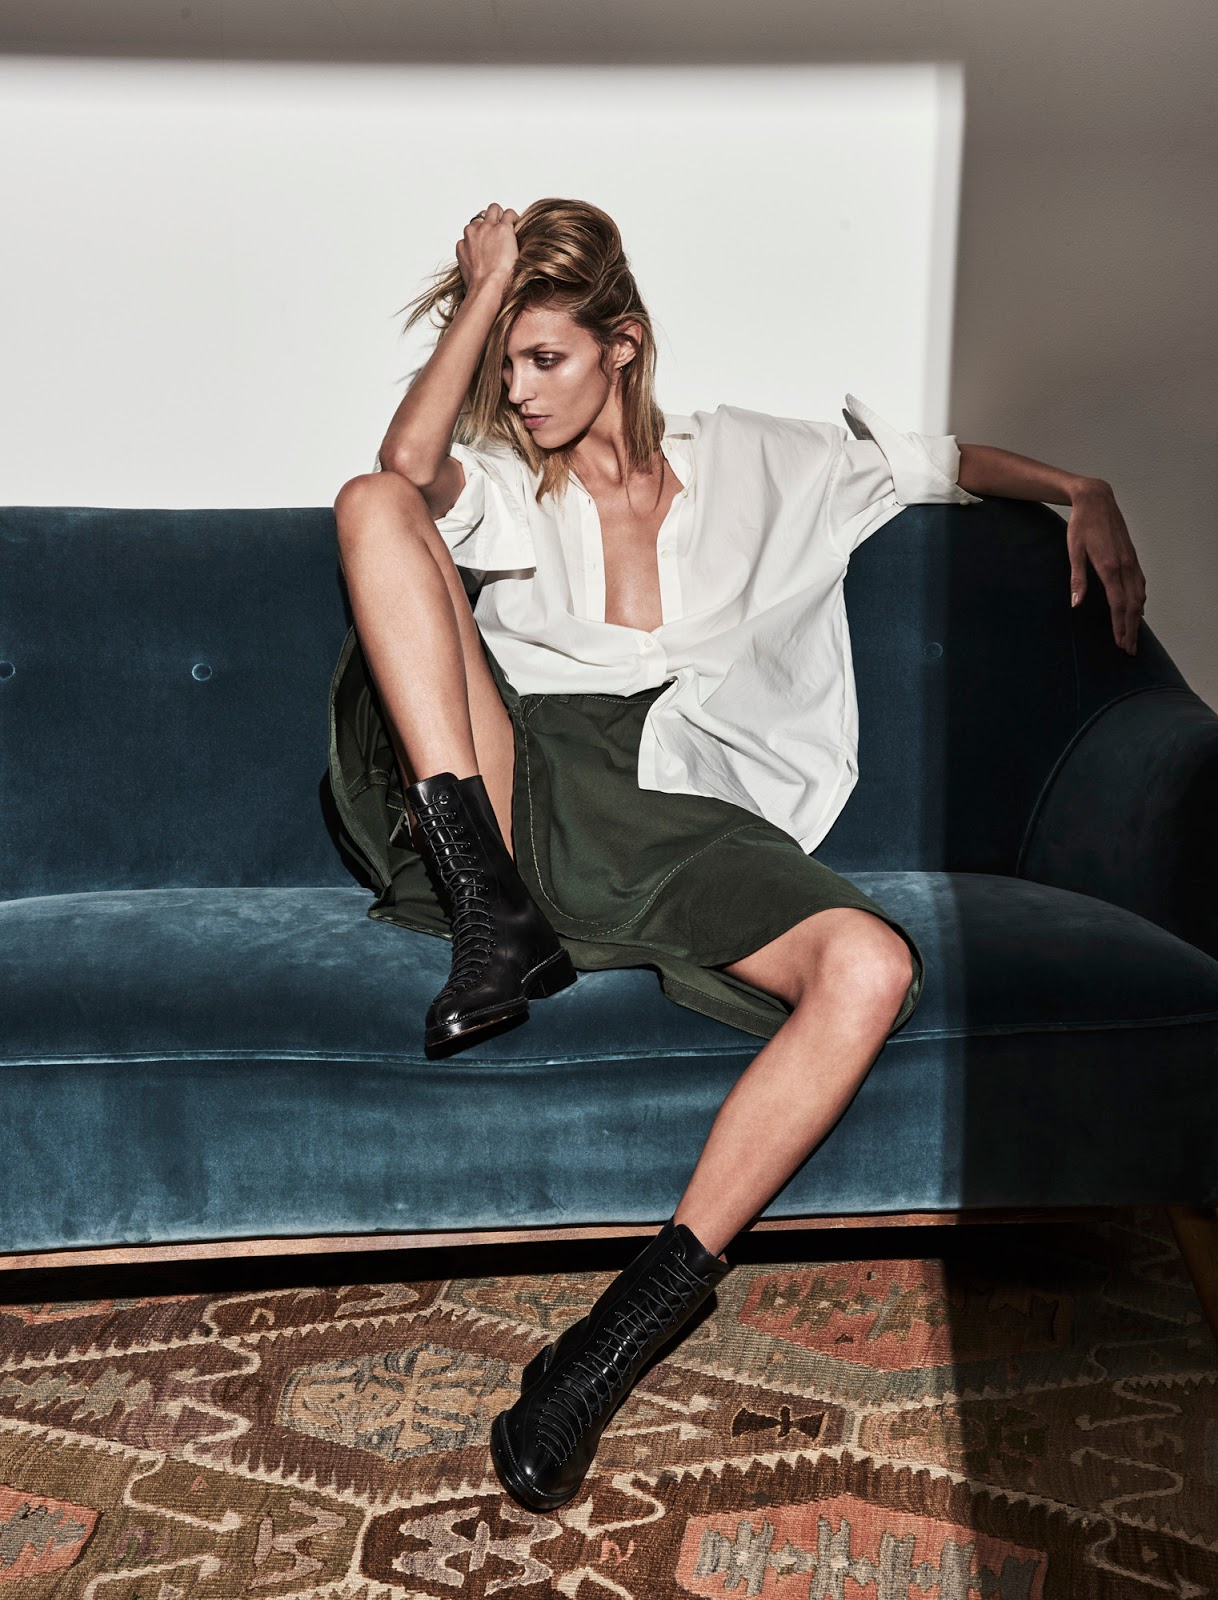 Anja Rubik in 'The Business Model' for The Edit June 2016